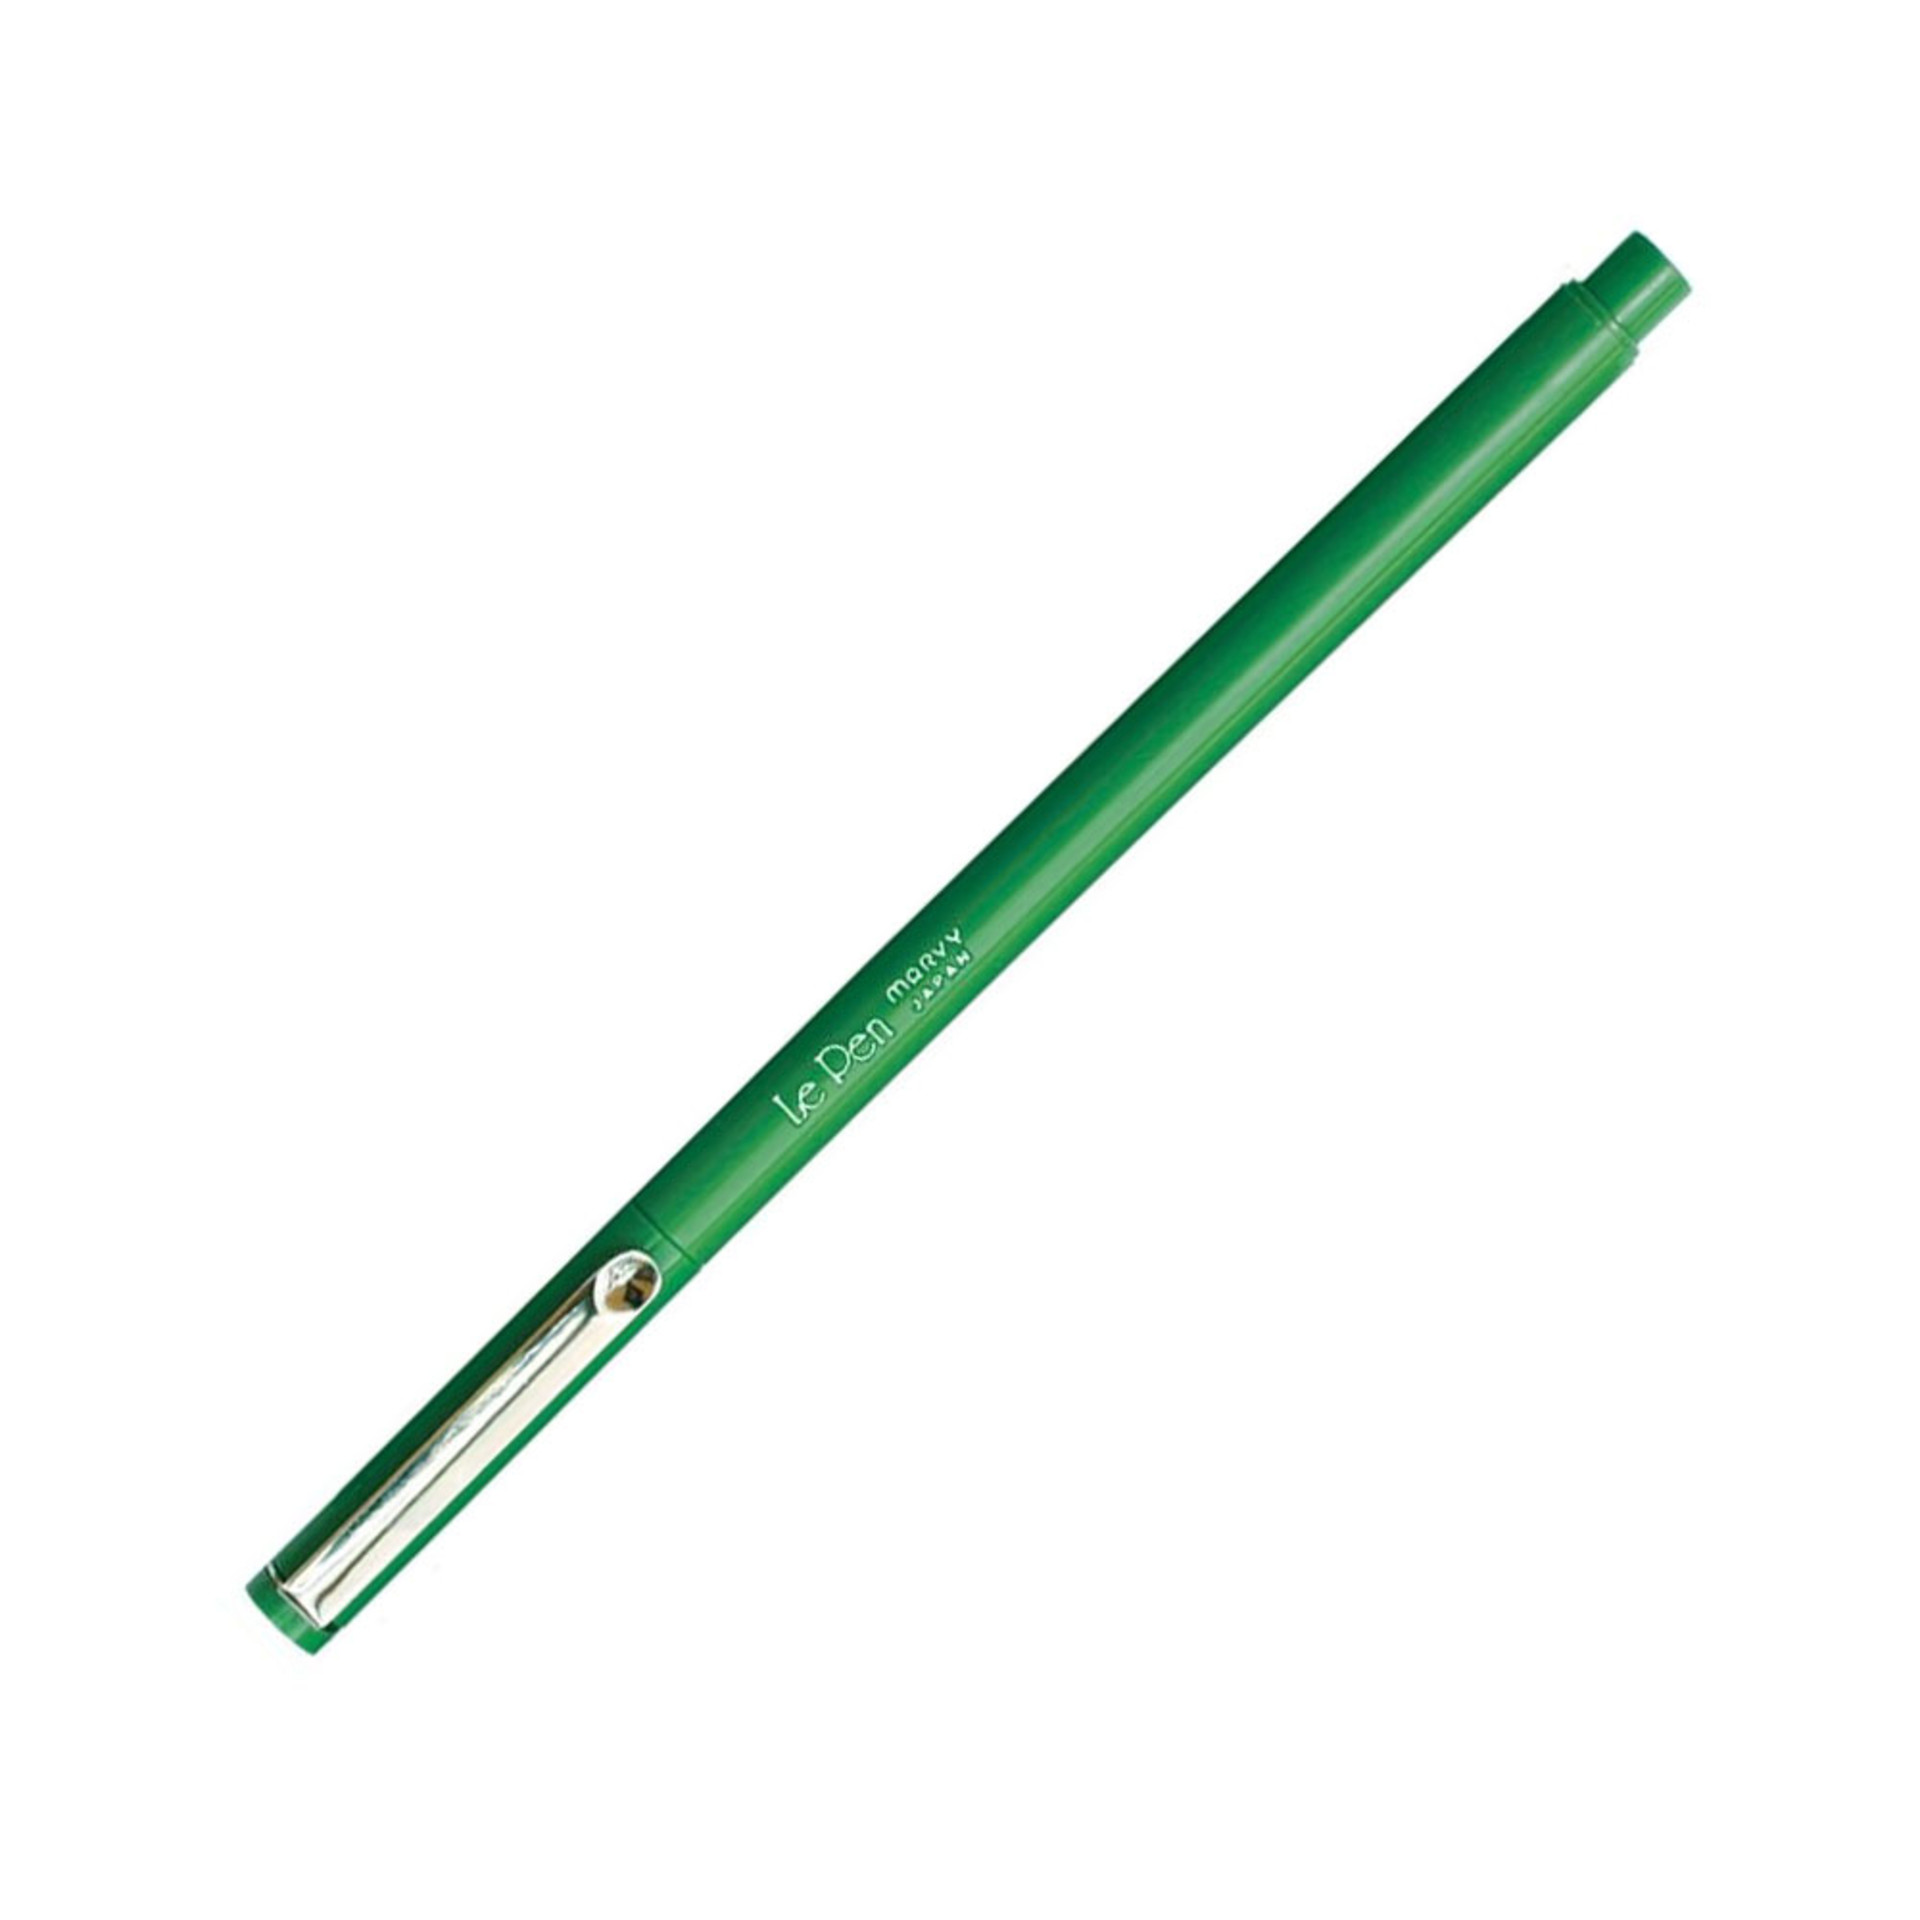 Uchida Marvy Le Pen Micro-Fine Point .3mm Pen – Green